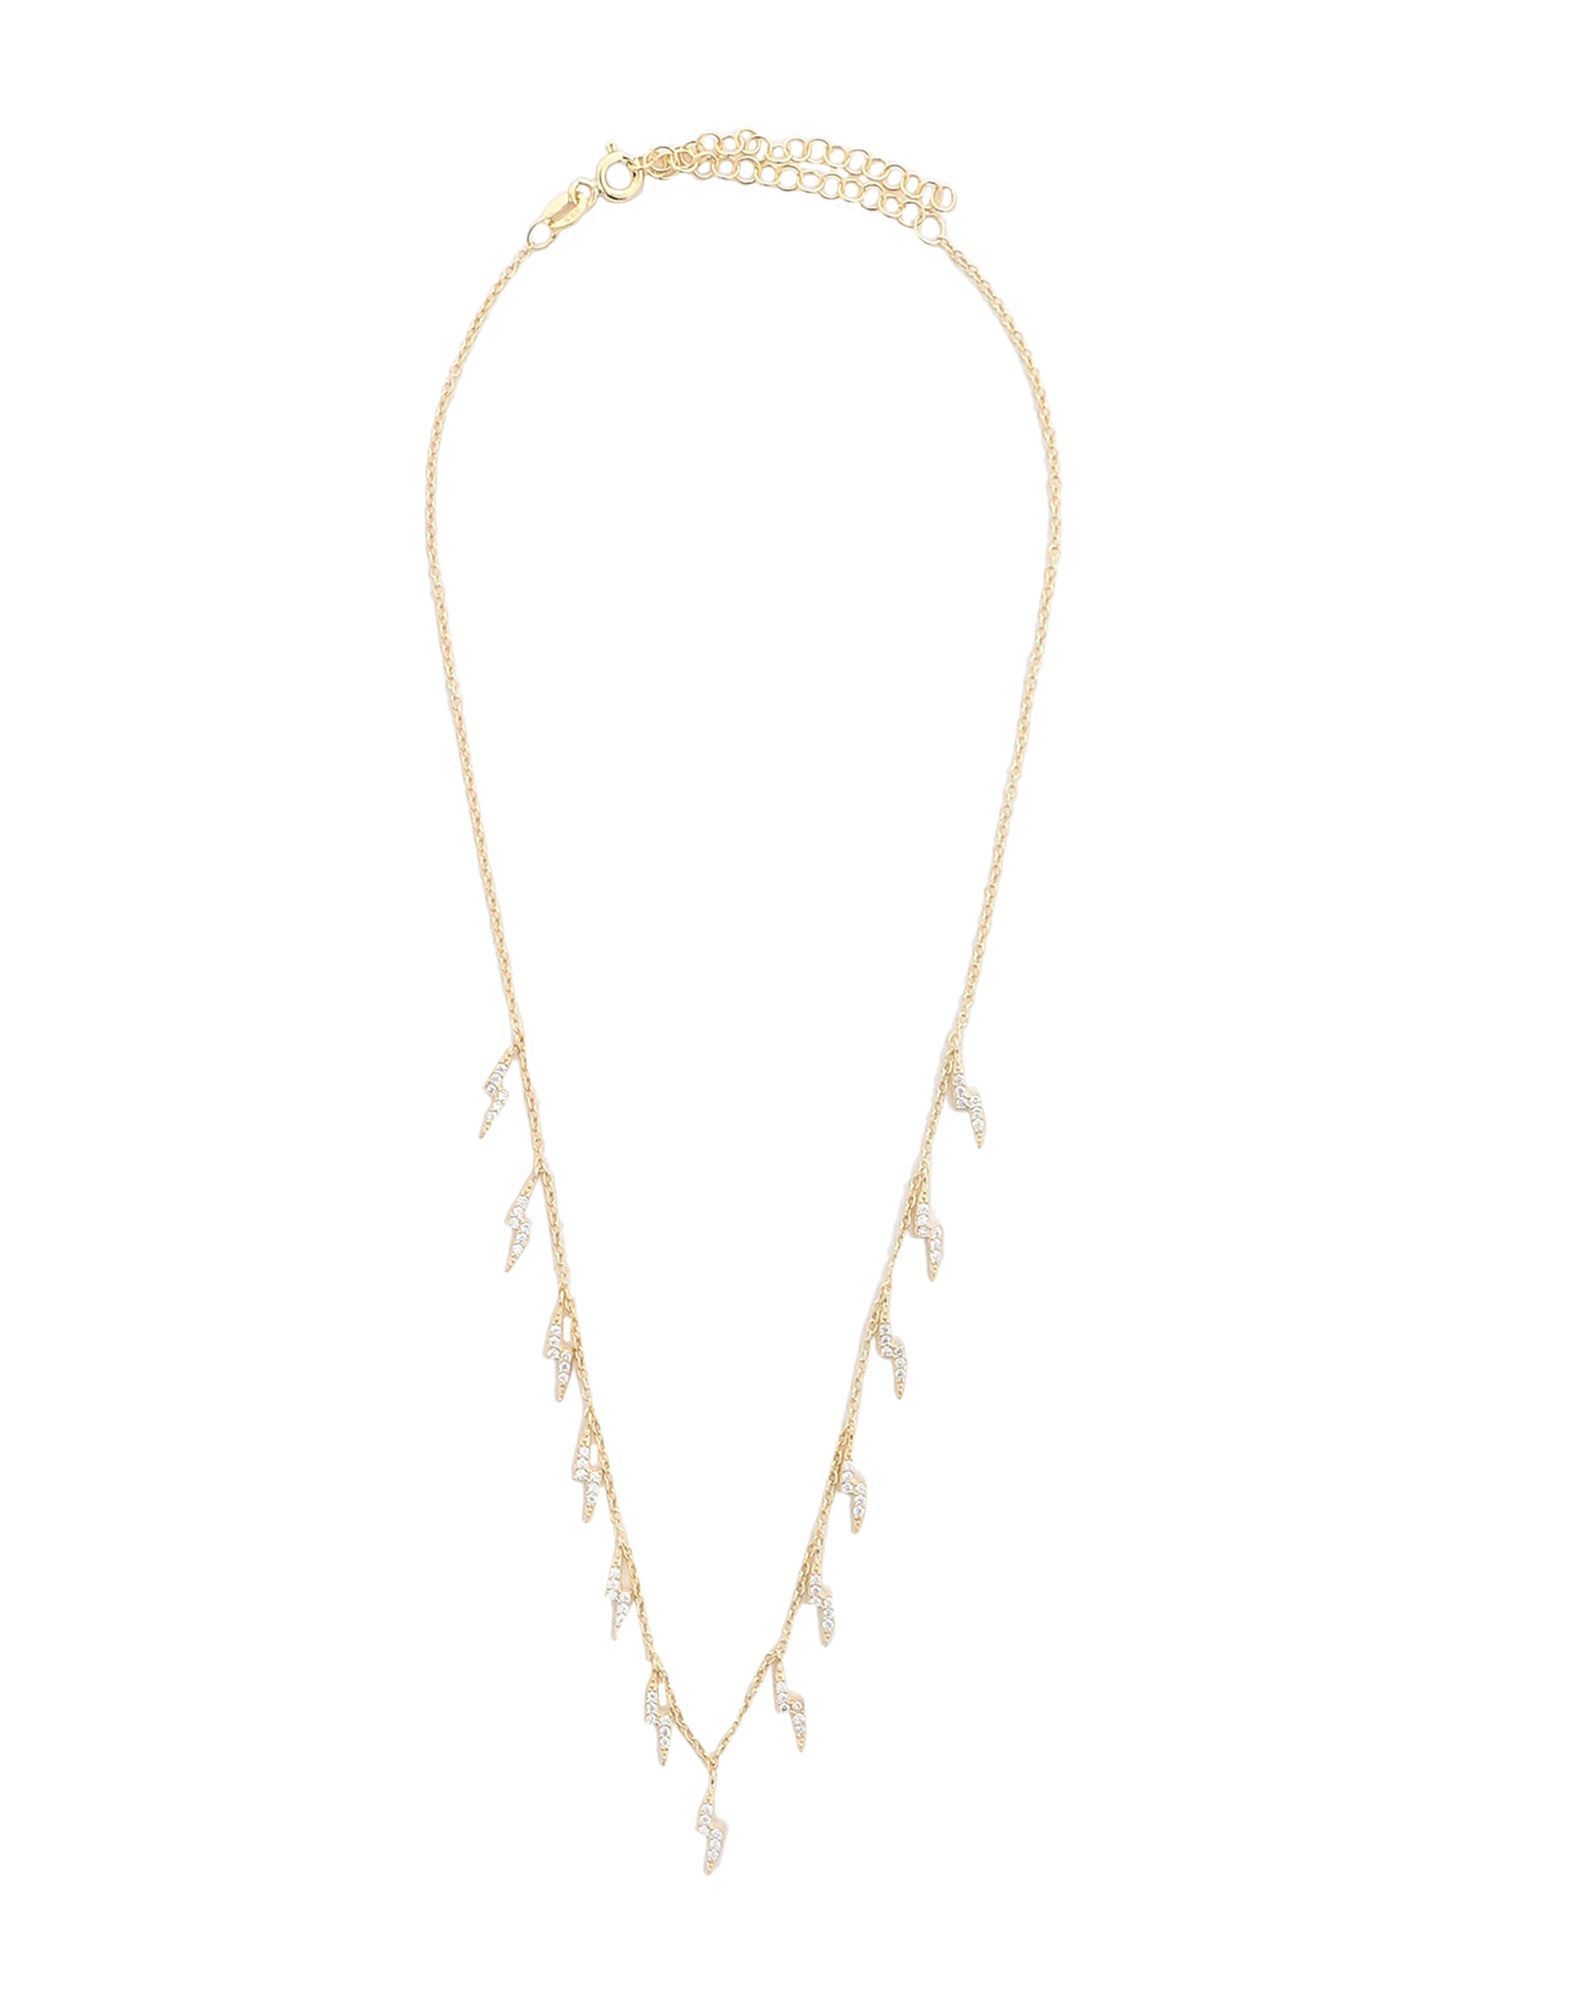 SPHERA MILANO Necklaces. adjustable hook and chain fastening, rhinestones. 925/1000 silver, 18kt Gold-plated